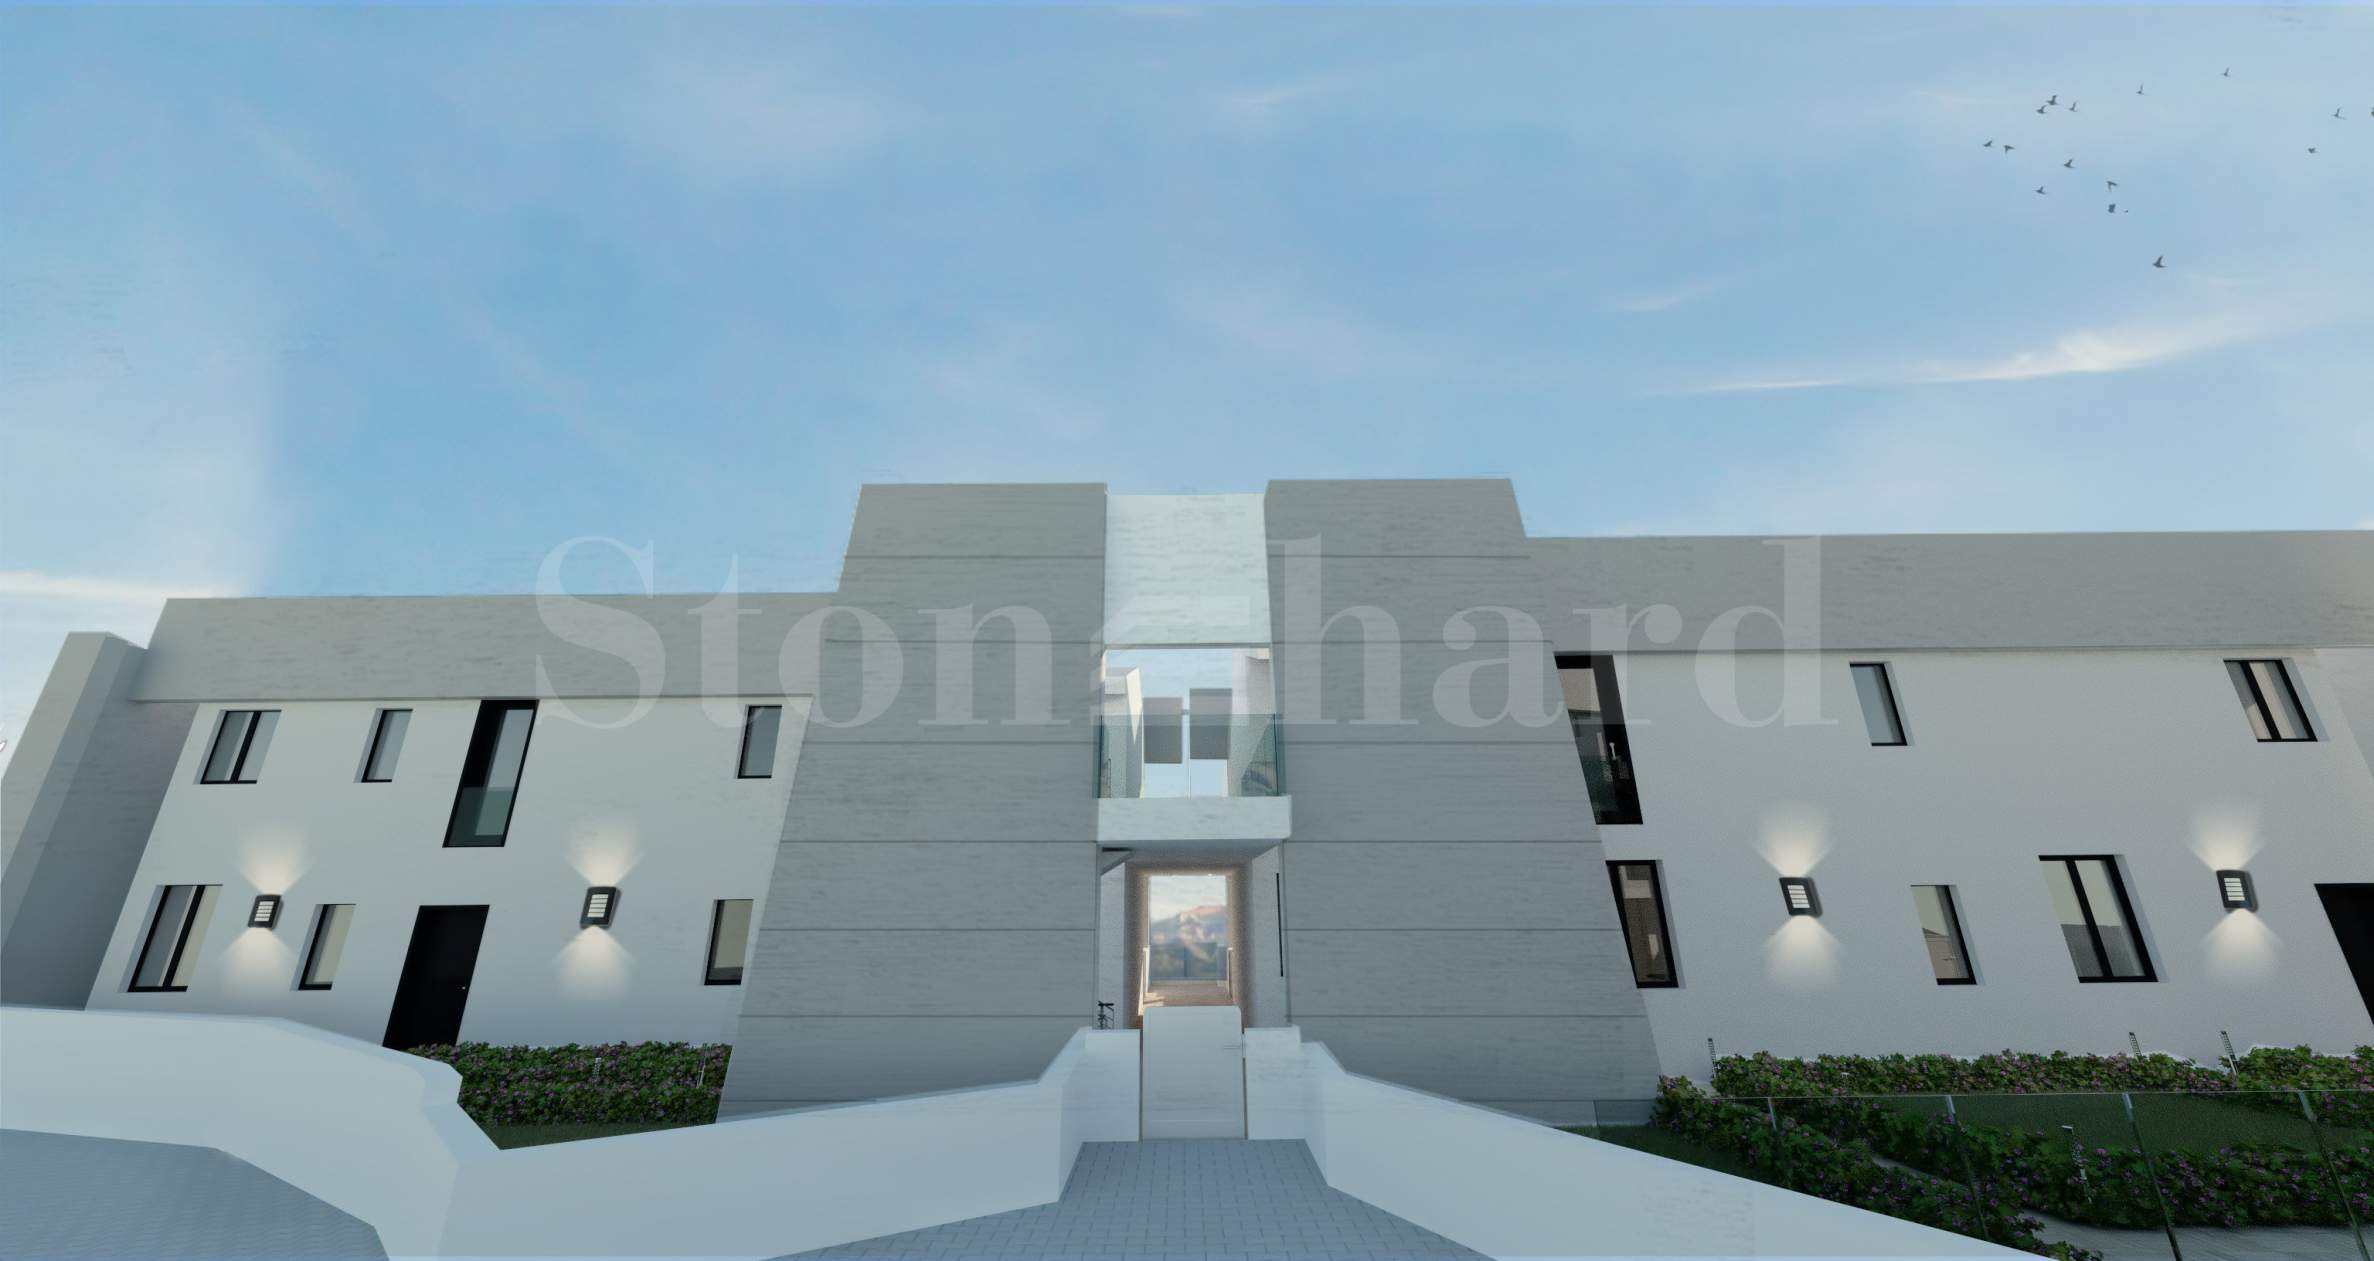 Holiday residences in Sardinia1 - Stonehard